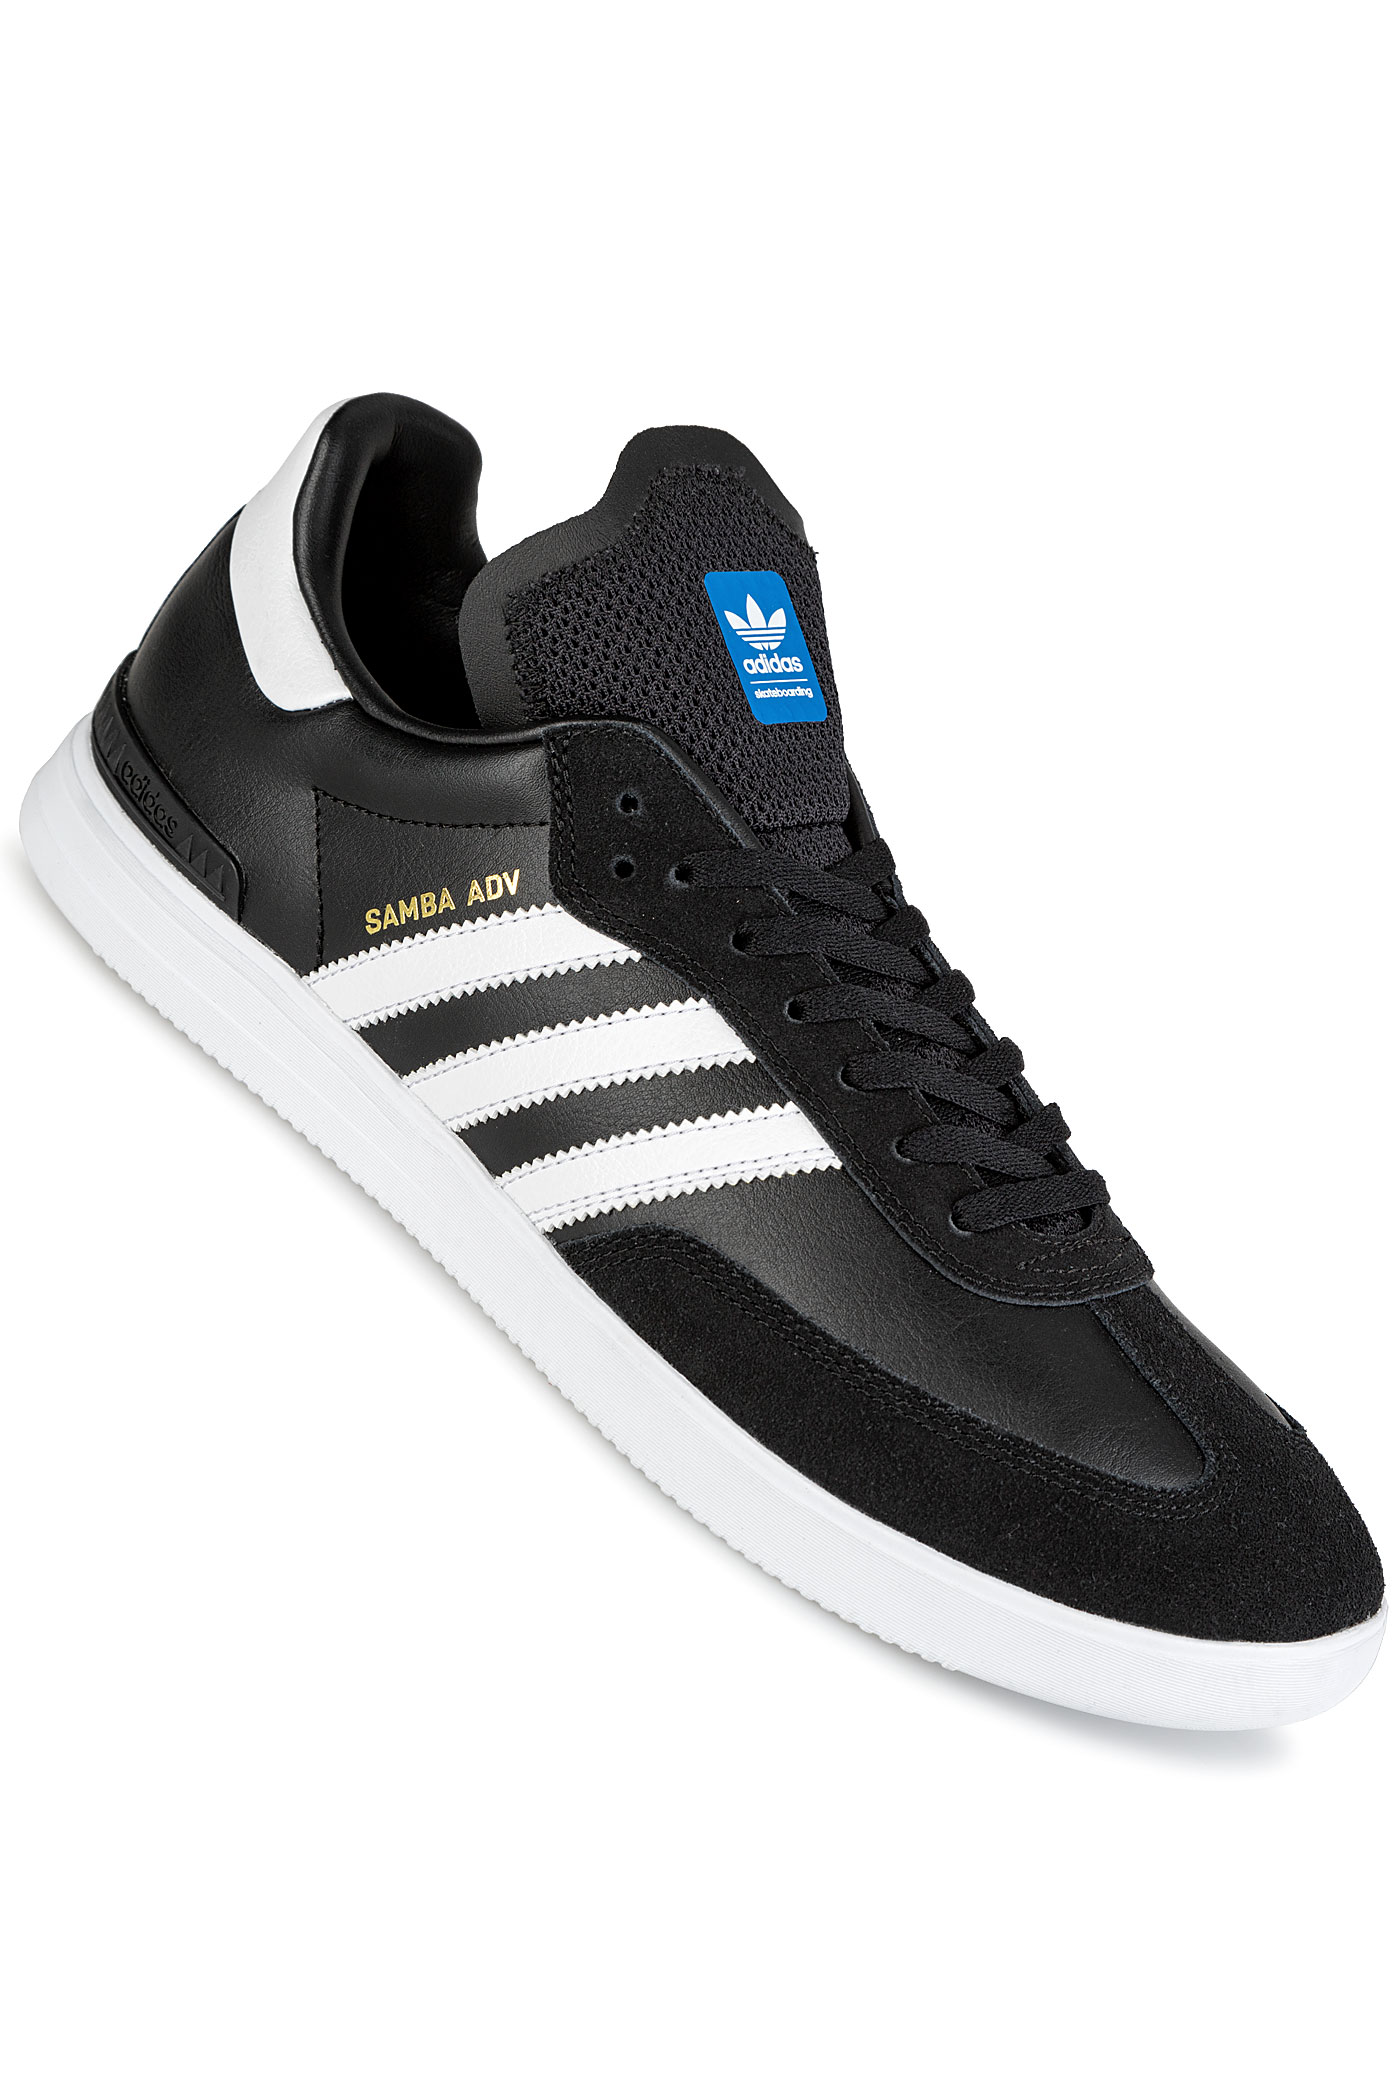 best service 0375c 62322 adidas Skateboarding Samba ADV Shoes (core black white bluebird)